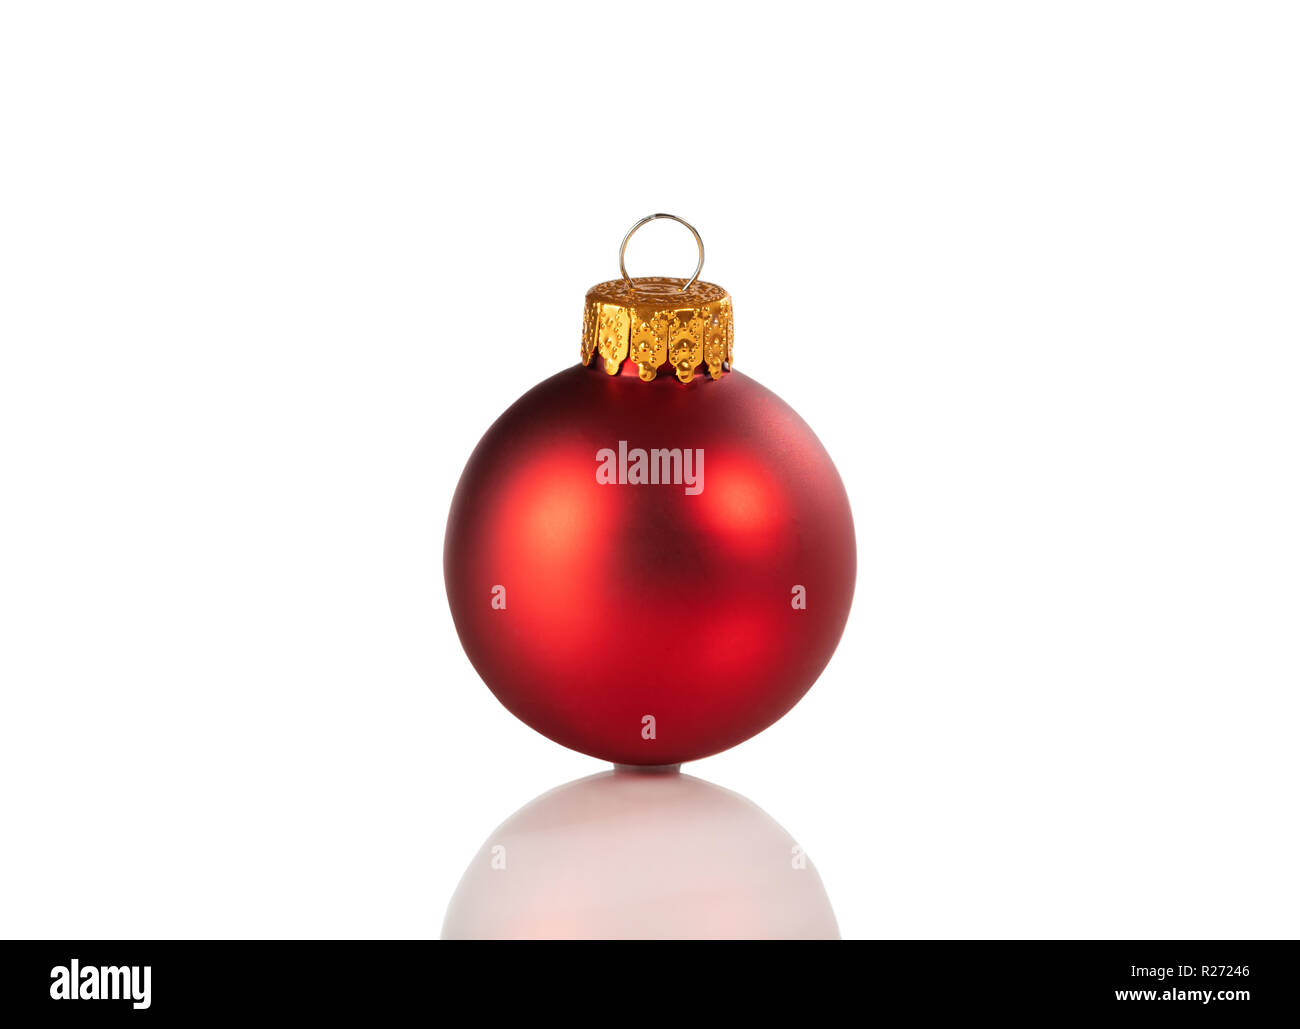 Christmas Ornament Ball Reflection Stock Photos & Christmas Ornament ...